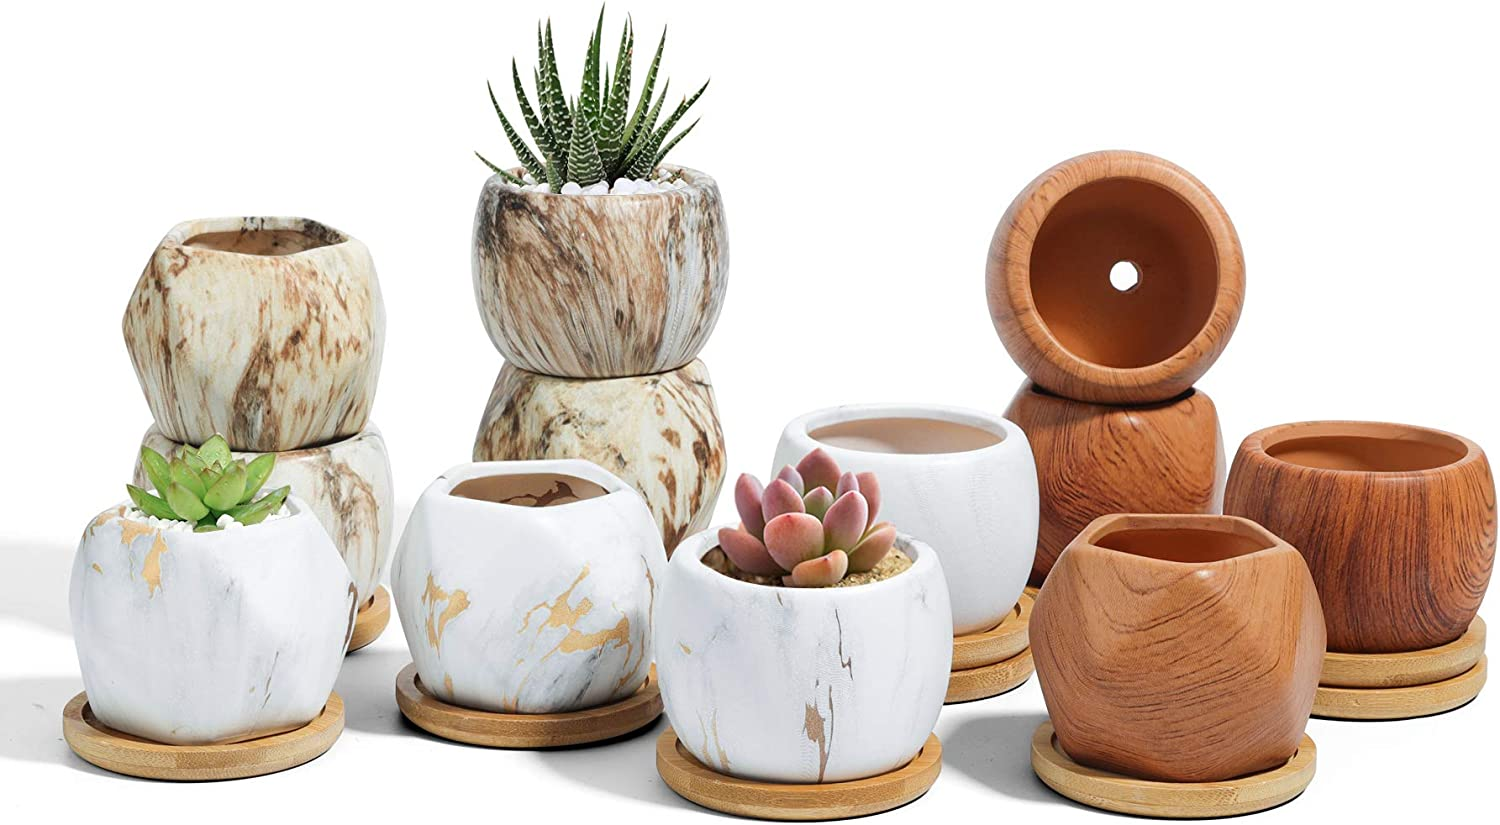 T4U 2.5 Inch Ceramic Succulent Pots Collection with Bamboo Tray Set of 12, Multi Color Small Plant Pot Marbleize Wood Grain, Geometric Cactus herb Planter Container for Indoor Home Office Decoration